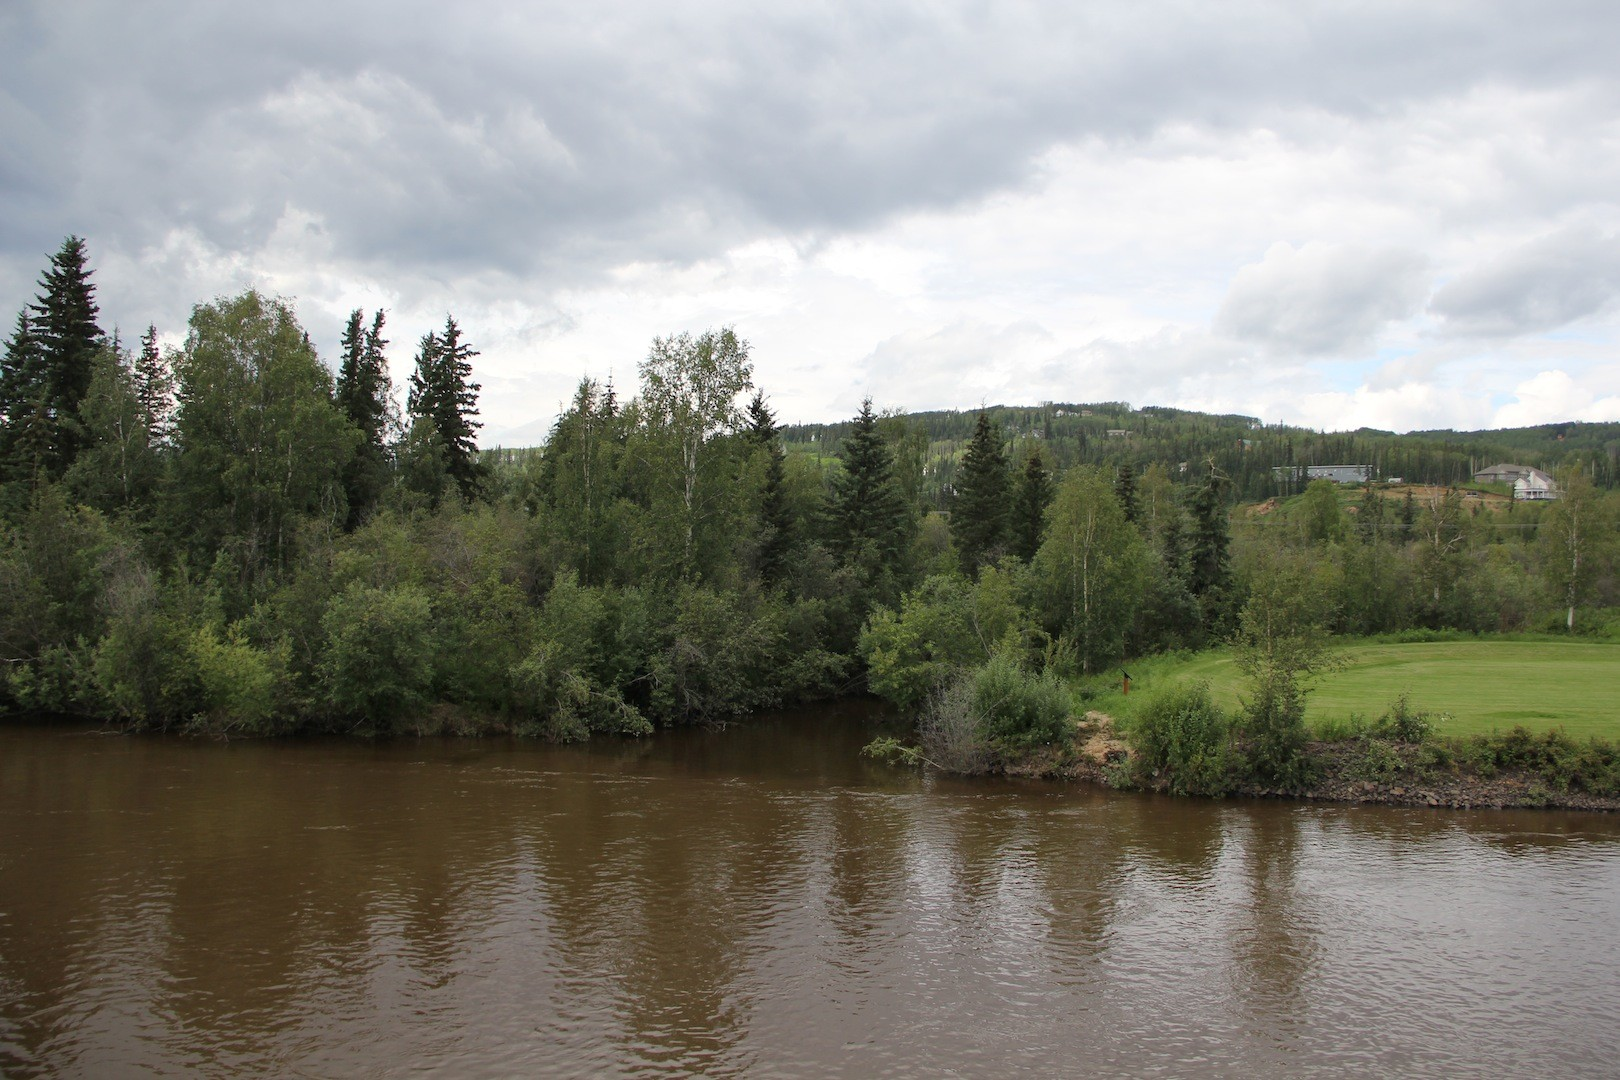 Cripple Creek as it feeds into the Chena River.